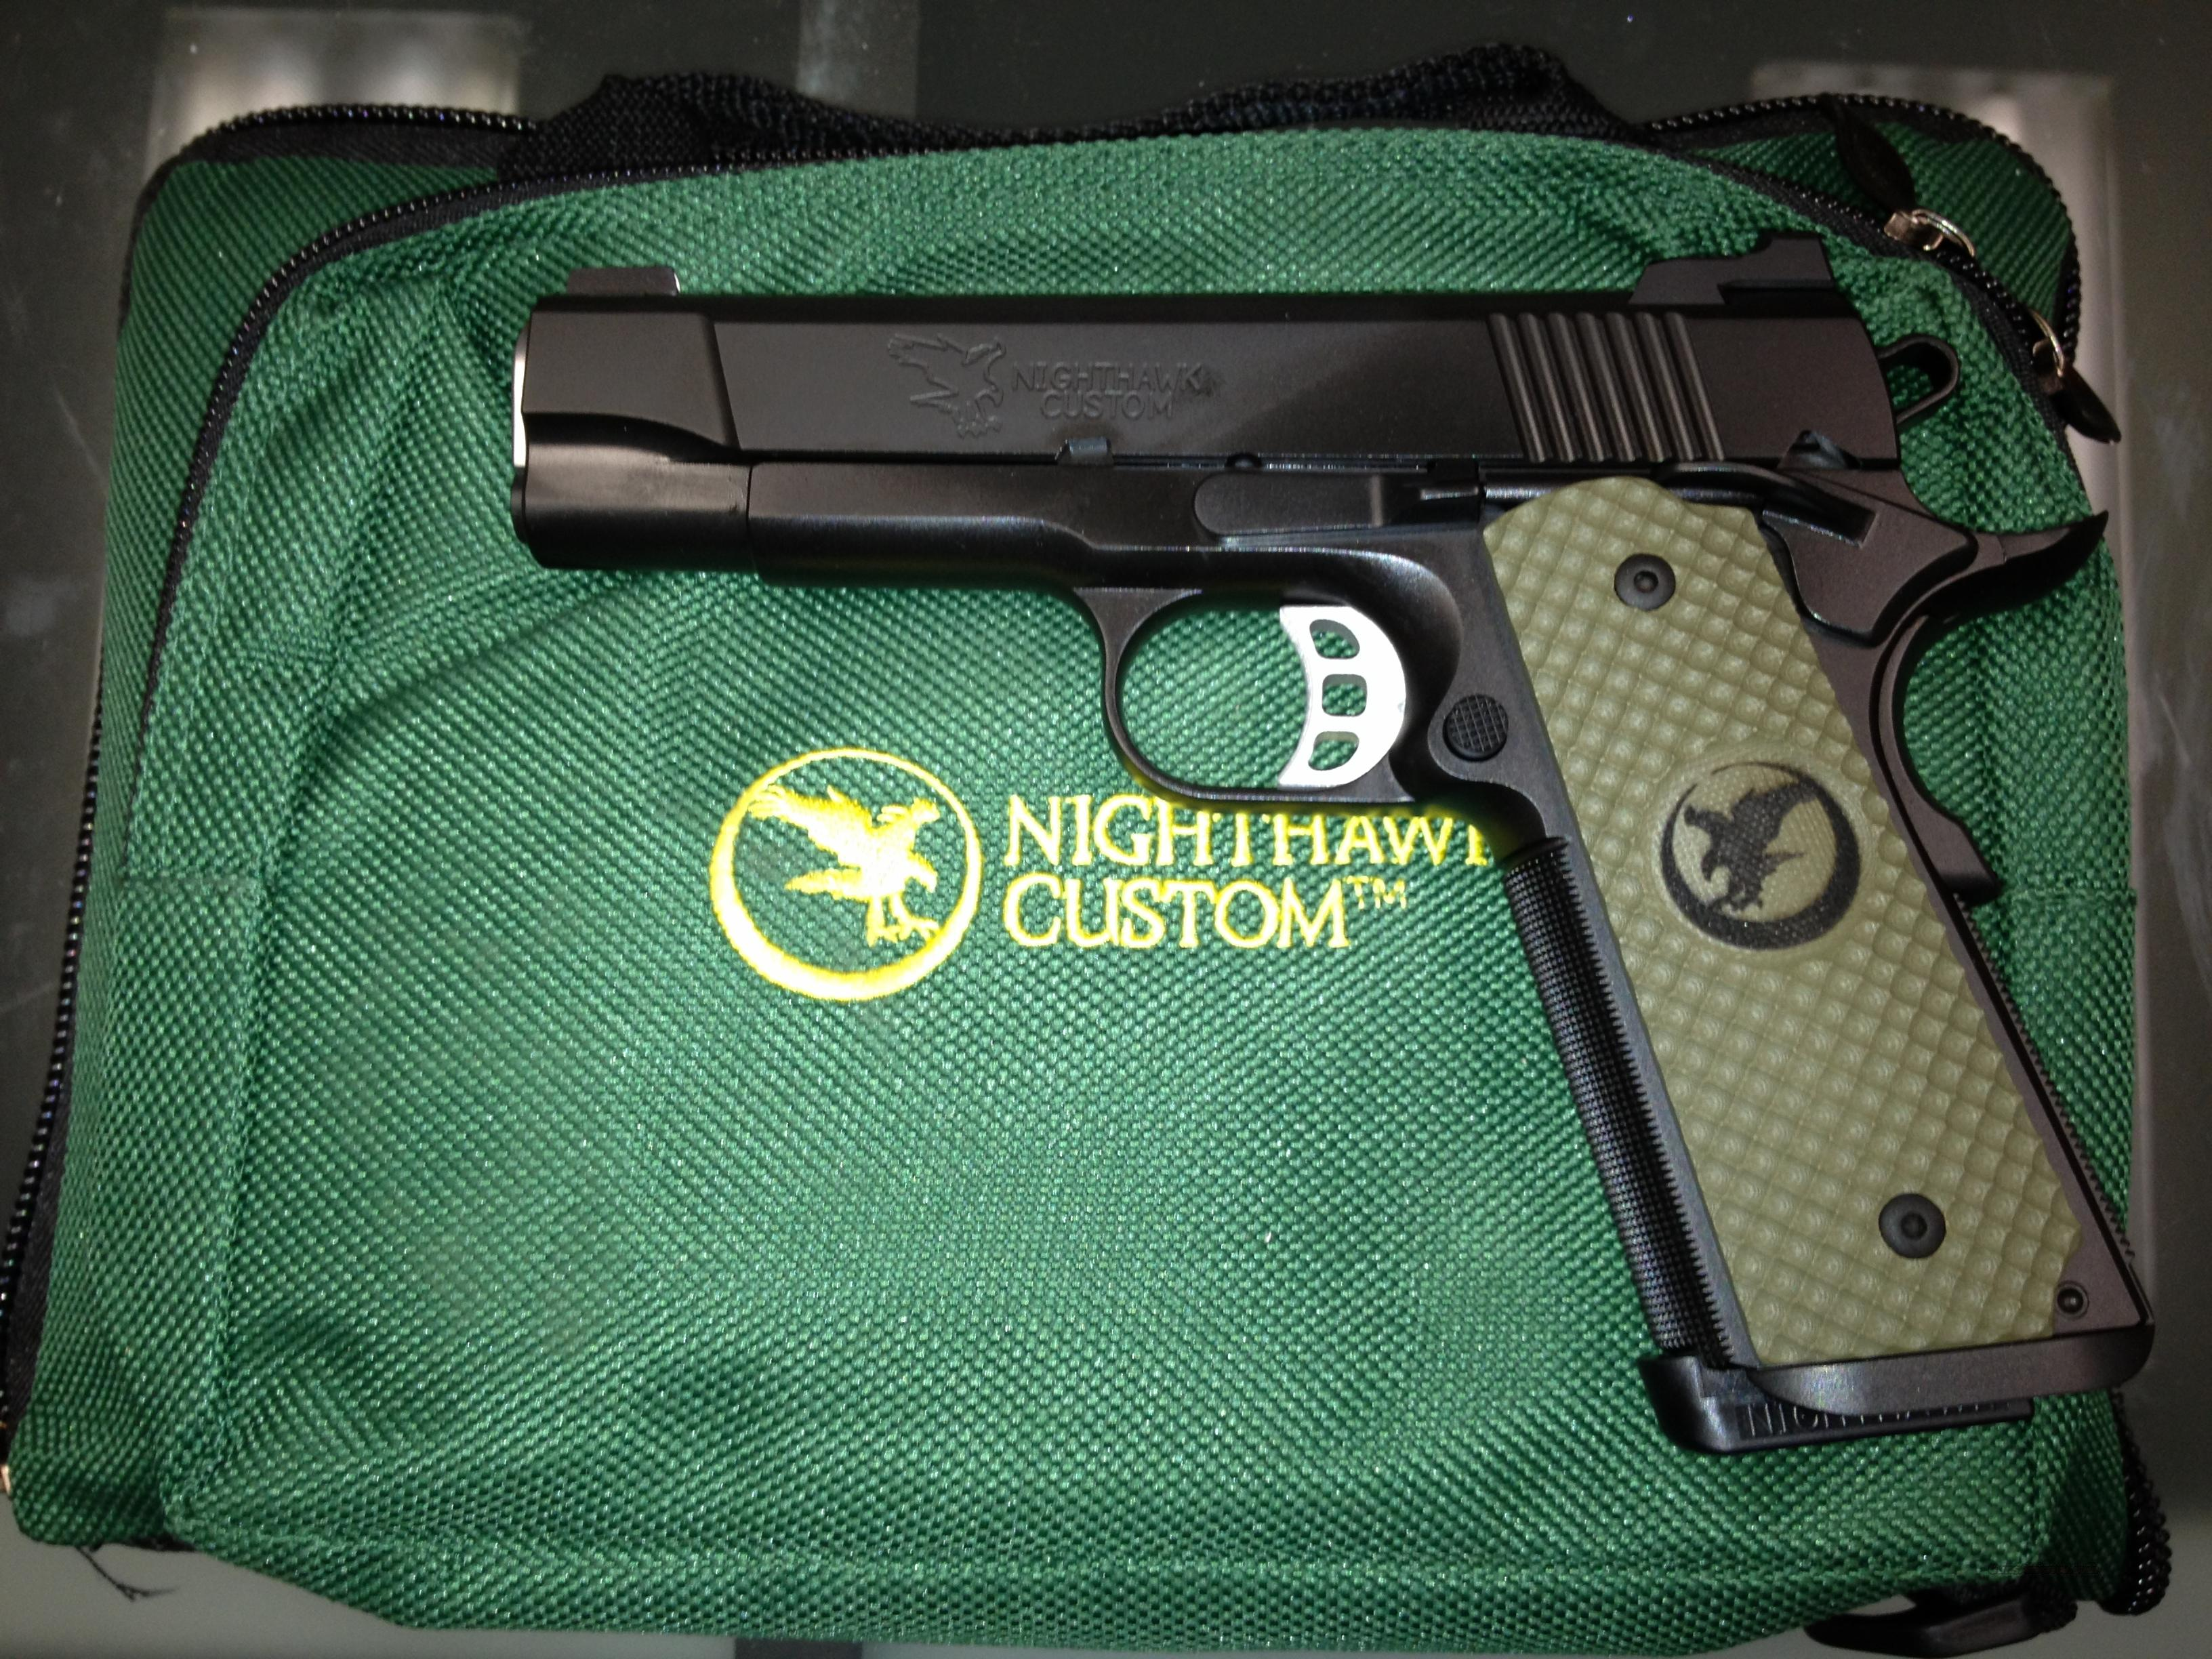 "Nighthawk Custom Falcon .45 ACP 4.25"" Commander Brand New/In Stock  Guns > Pistols > Nighthawk Pistols"